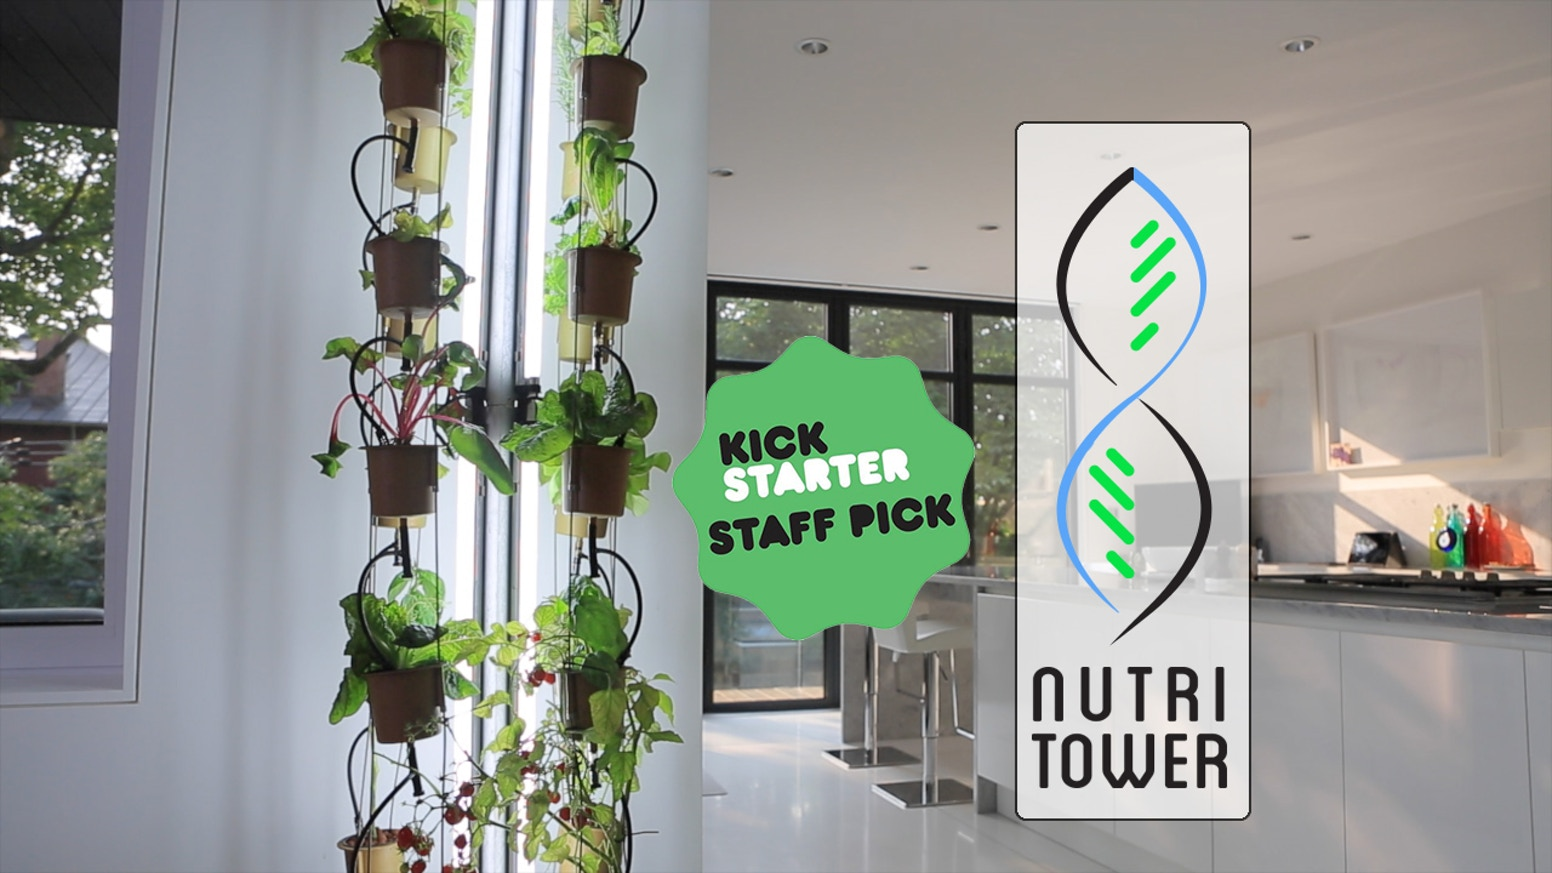 The NutriTower is a vertical hydroponic system specifically designed for indoor use. It's beautiful and fun to use! What will you grow?